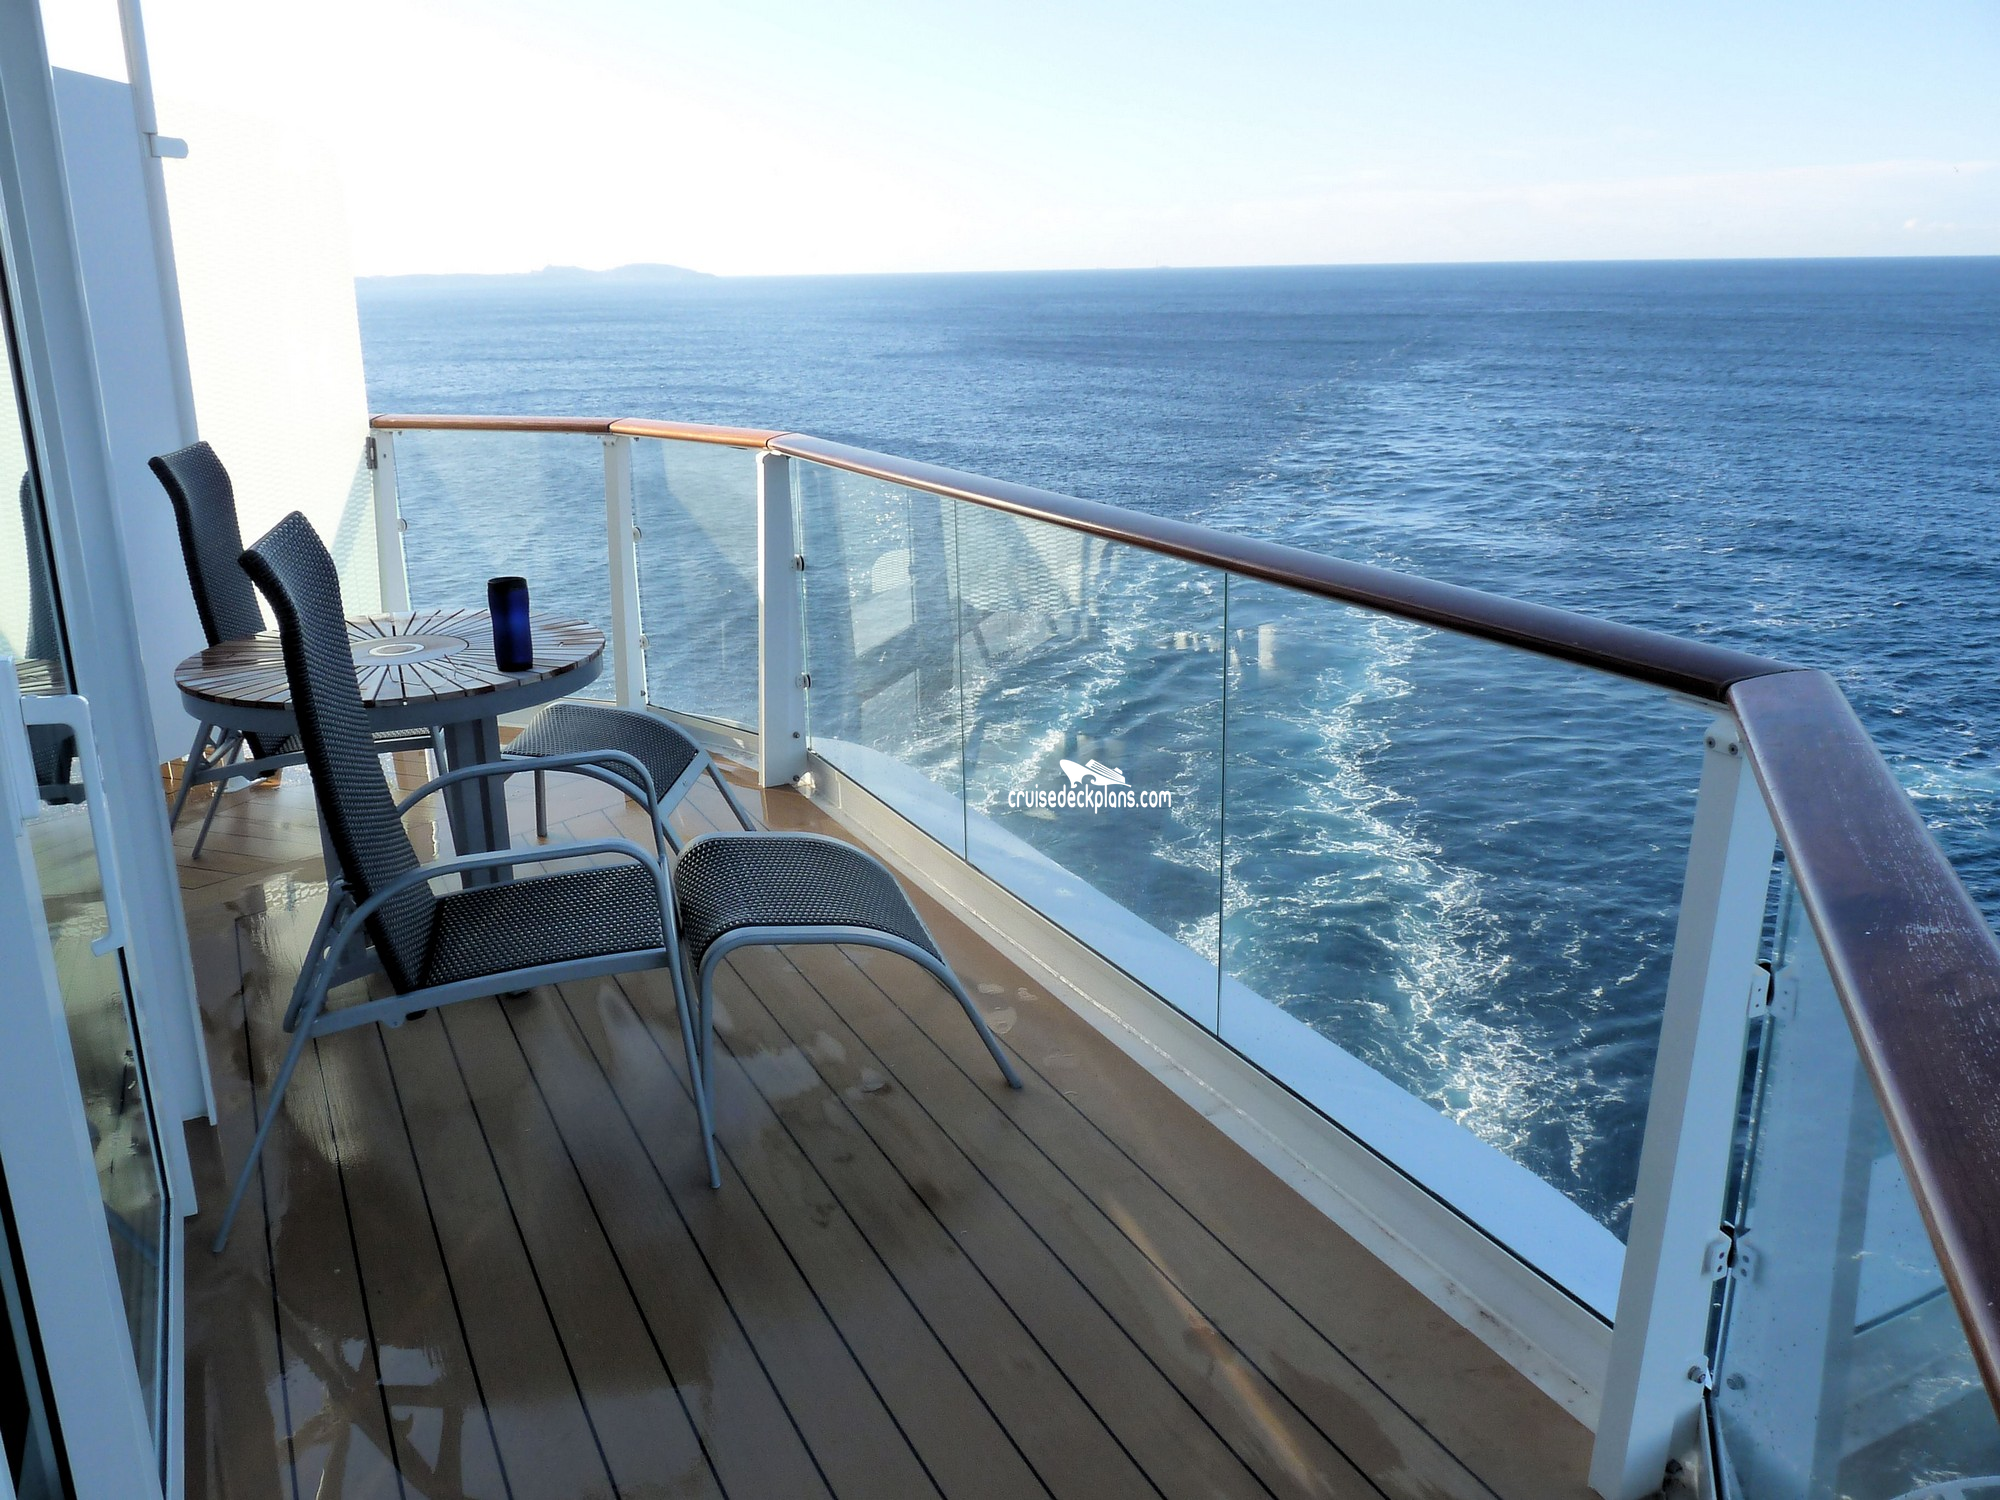 Barbara Woldridge Celebrity Equinox Cabin Photos